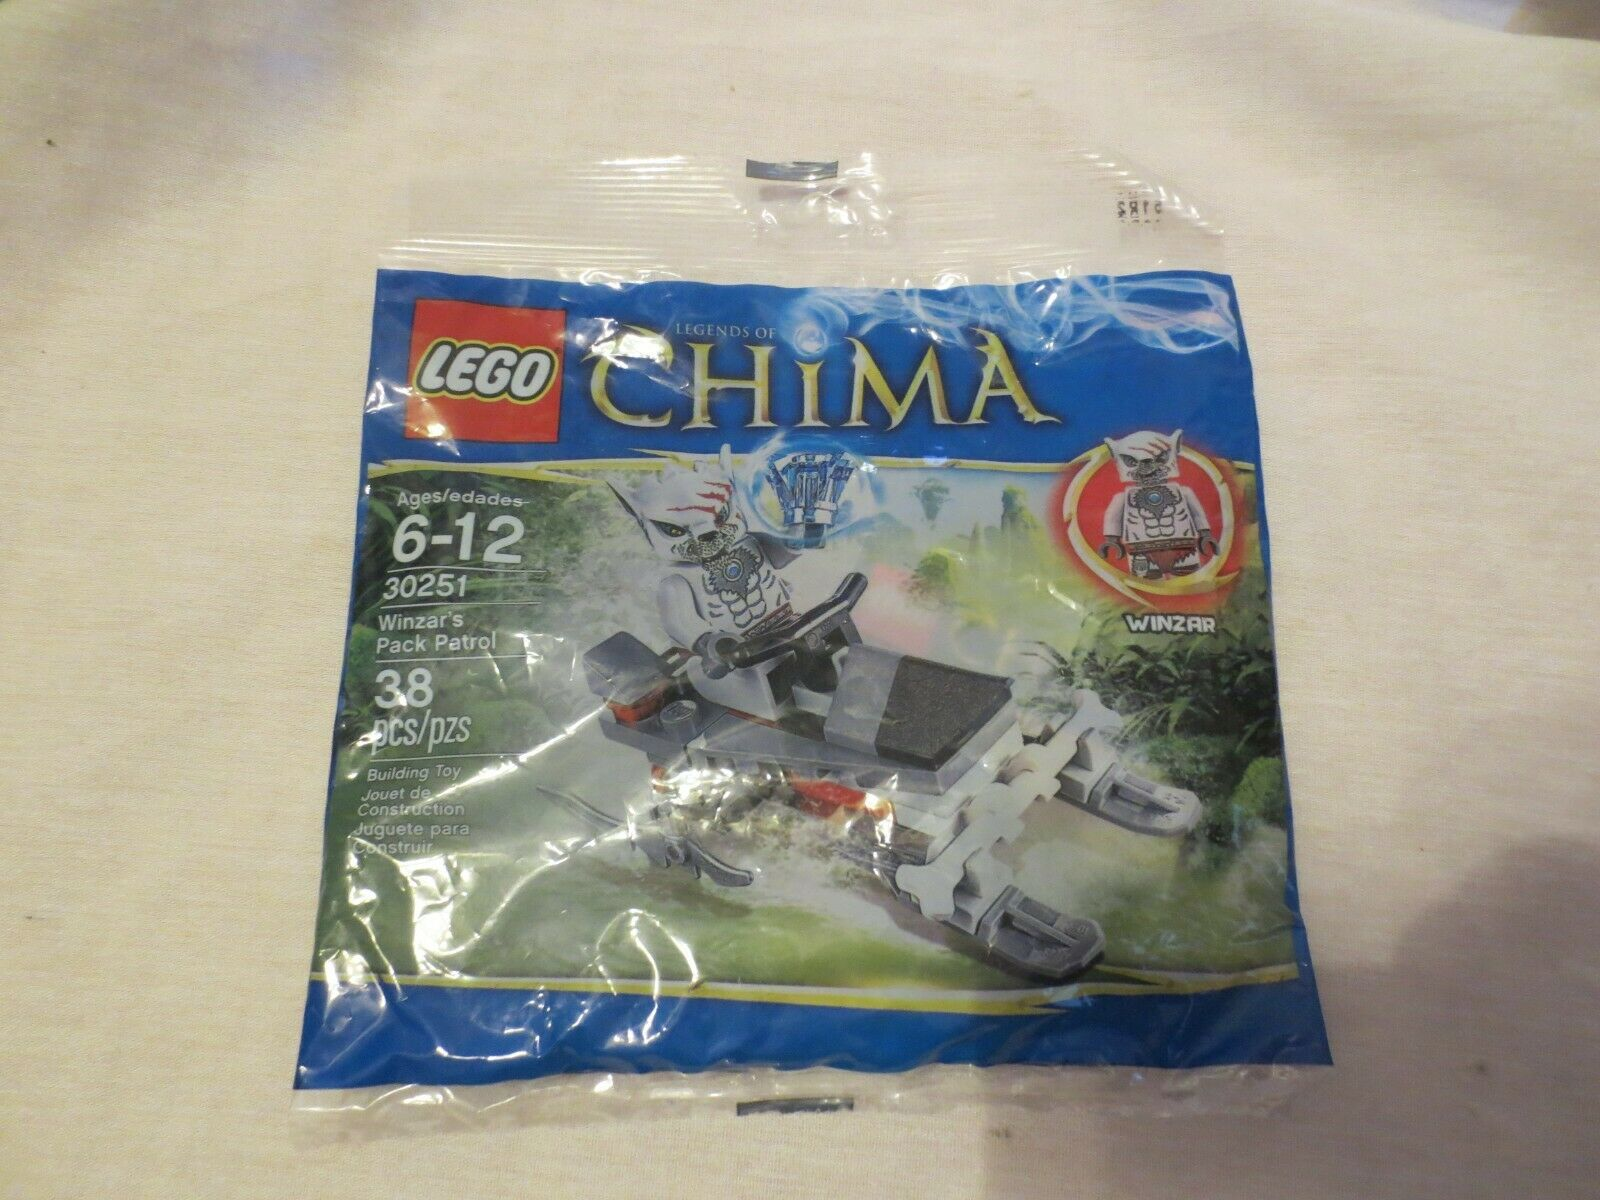 LEGO LEGENDS OF CHIMA 30251 WINZAR/'s PACK PATROL NEW SEALED PROMO